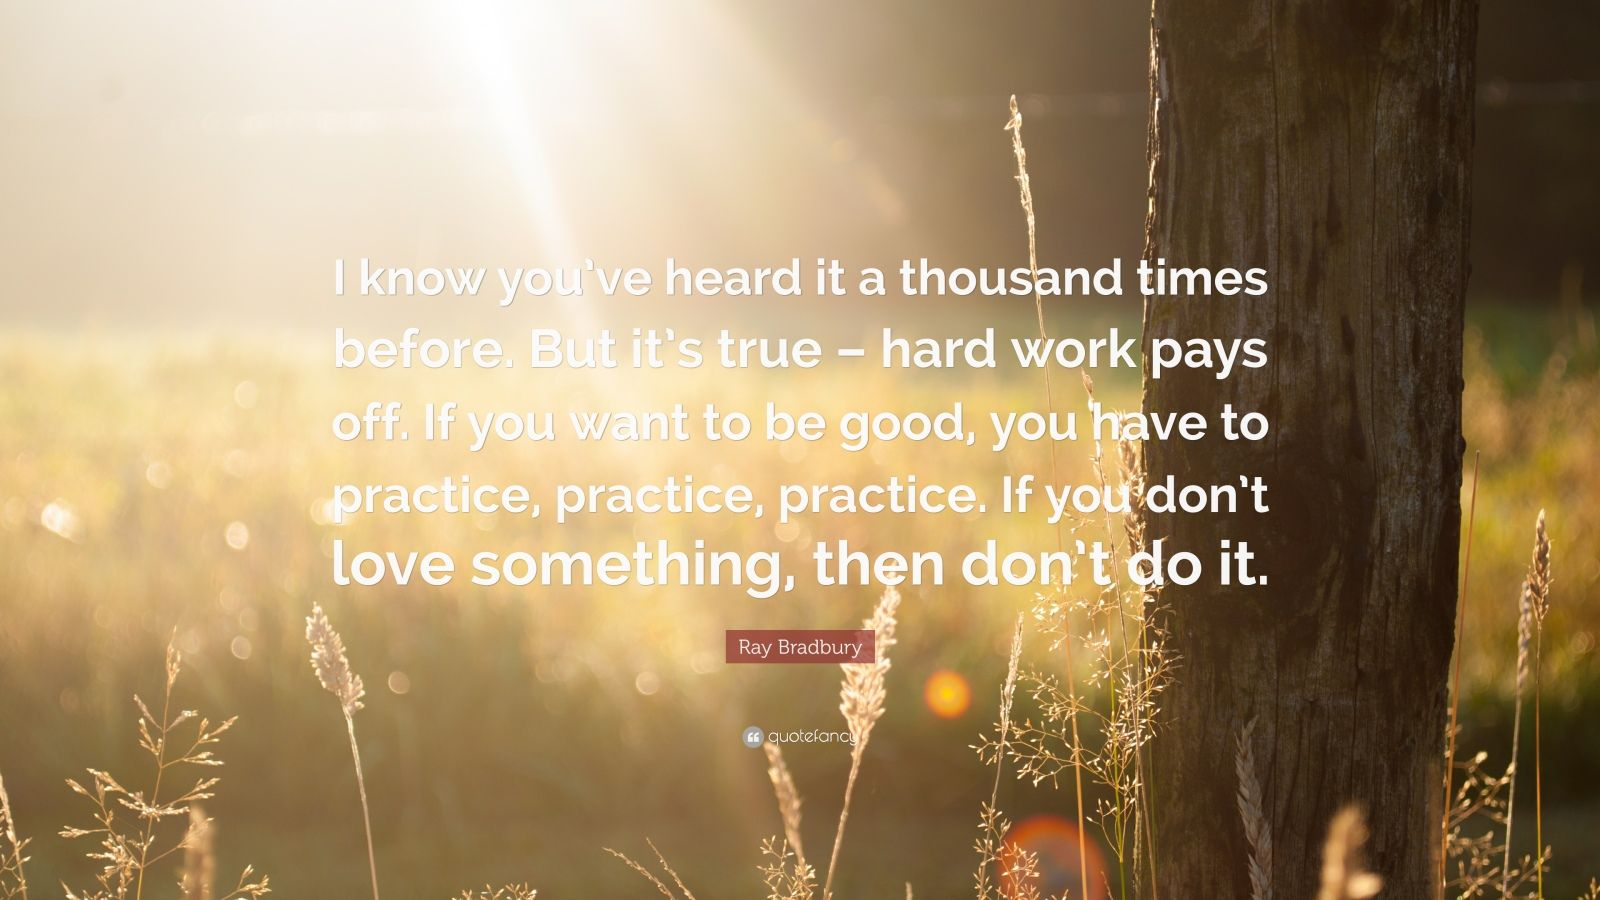 """Ray Bradbury Quote: """"I know you've heard it a thousand times before. But it's true – hard work pays off. If you want to be good, you have to practice, practice, practice. If you don't love something, then don't do it."""""""